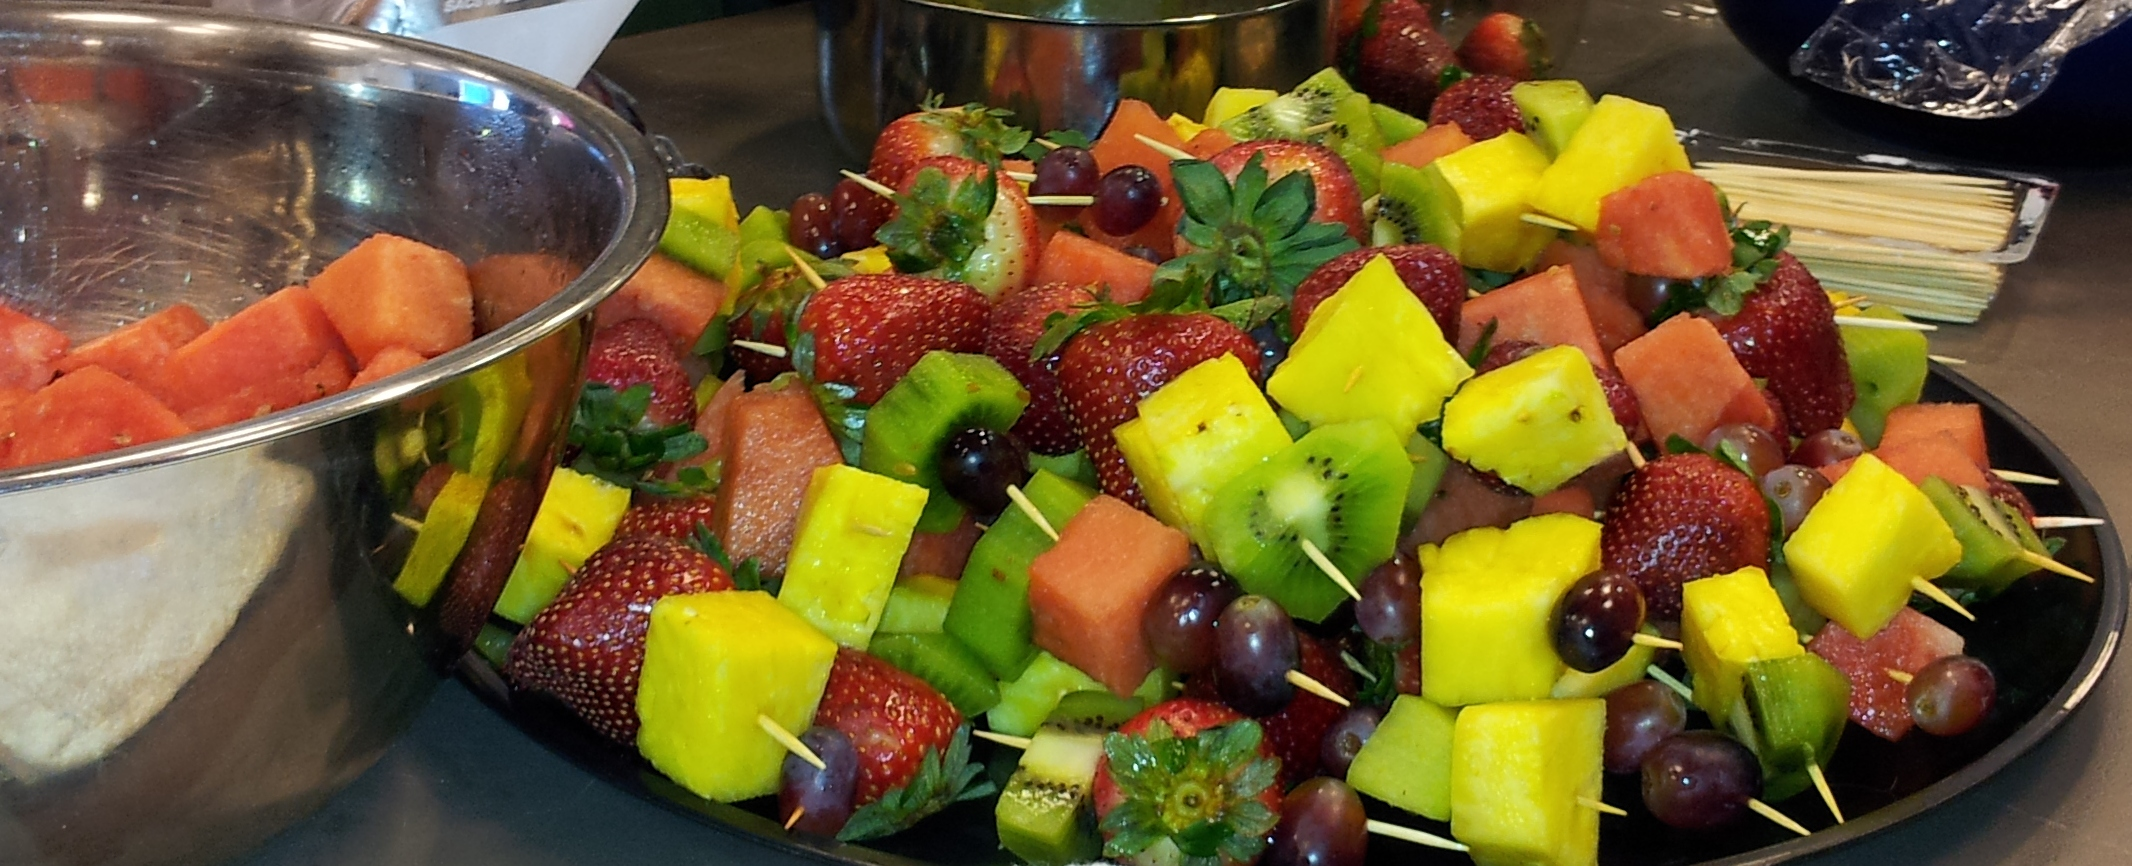 Fruit Kabobs are fun snacks for kids and adults!